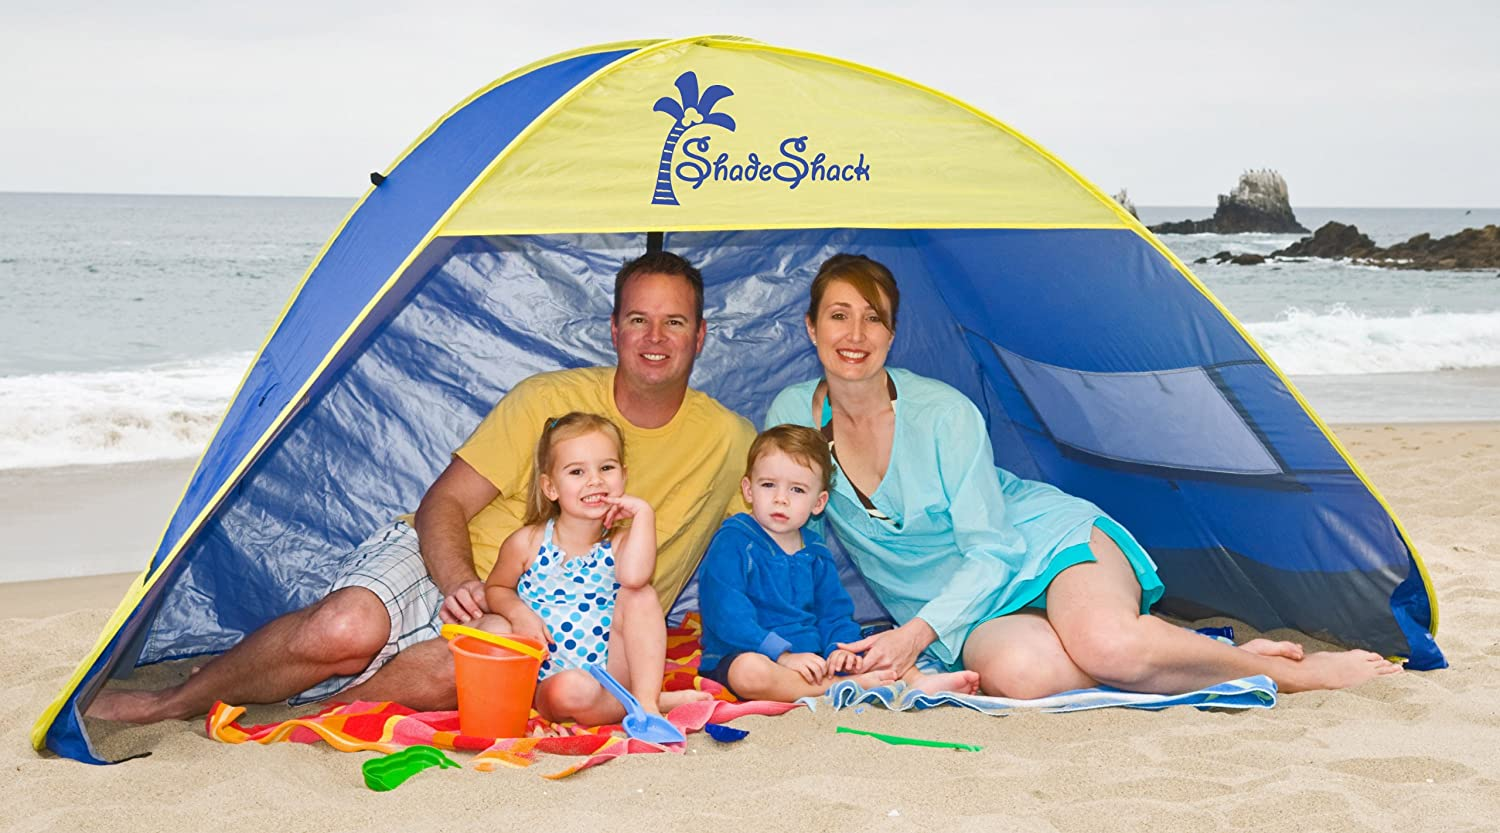 Top 10 best easy set up beach tents for sun shelter 2016 for Abri mural sun shelter